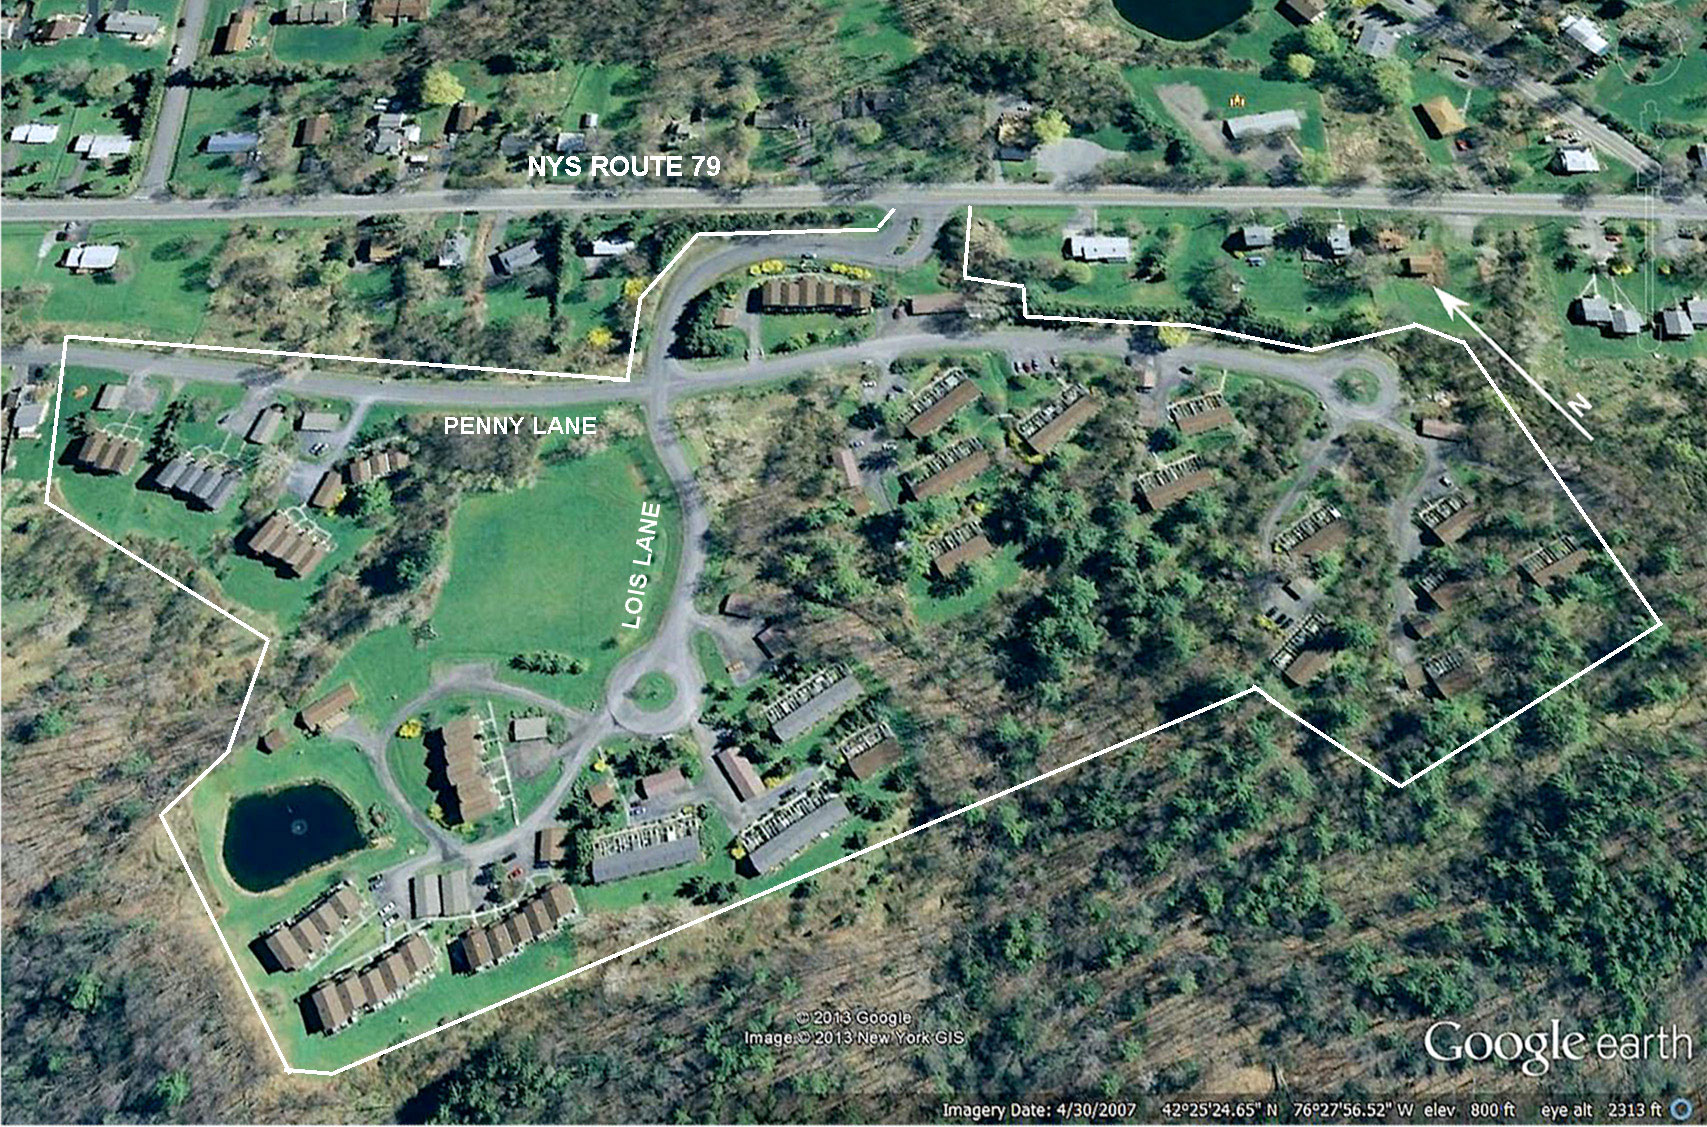 Maps And Floor Plans Commonland Community - Aerial view maps